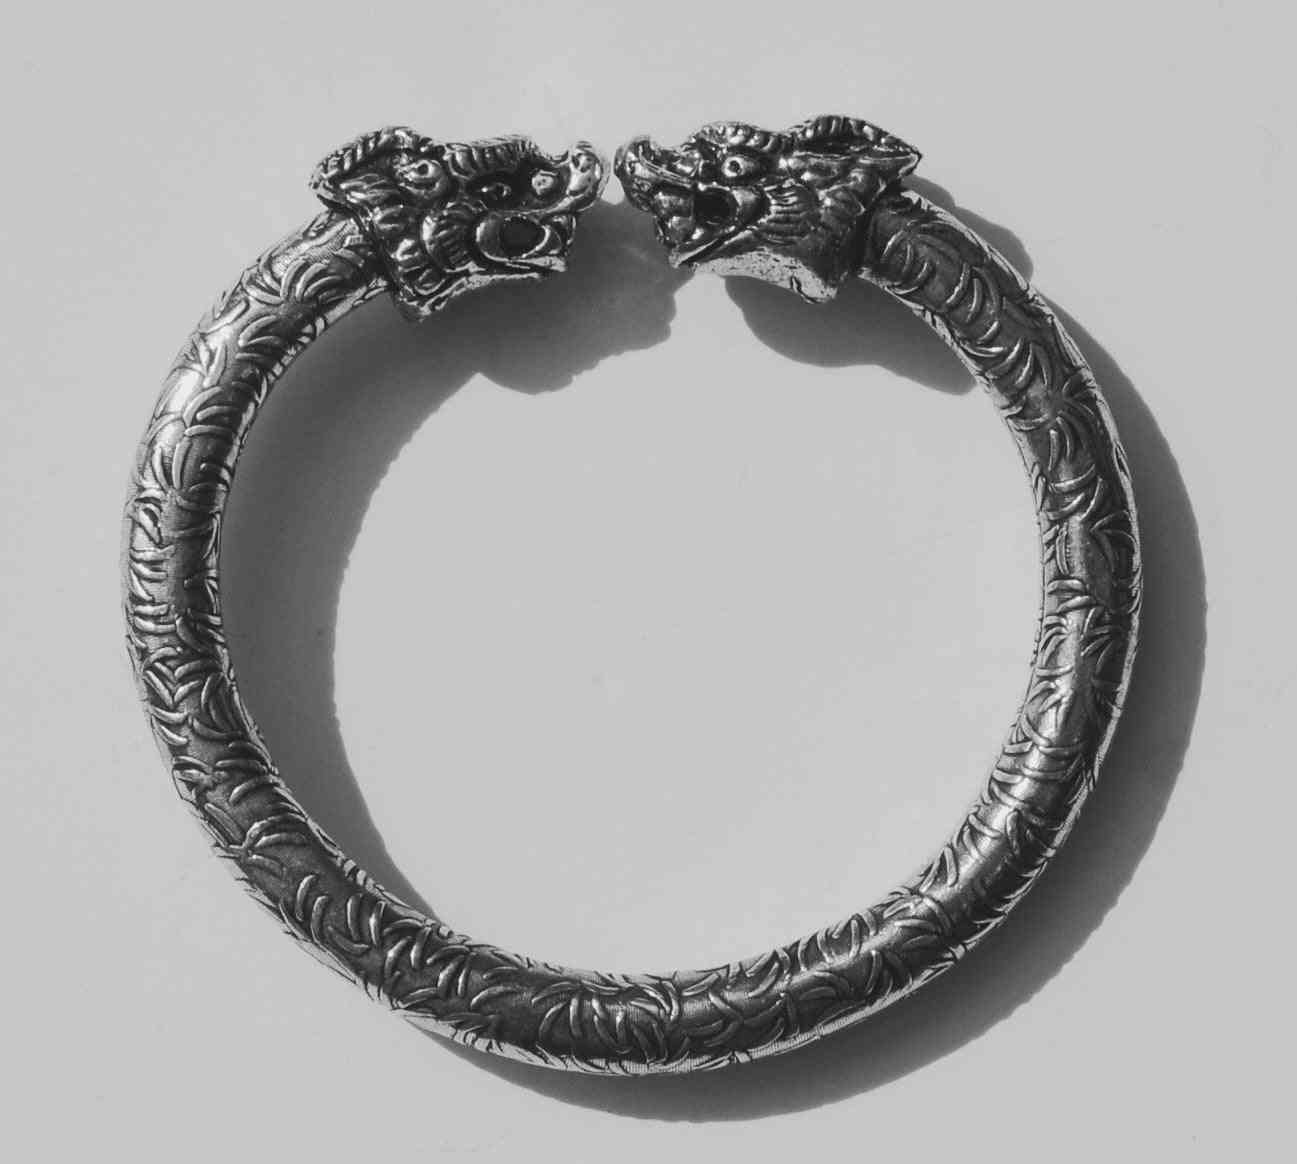 Antique Norse Bracelet With Peacock Heads & Leaf